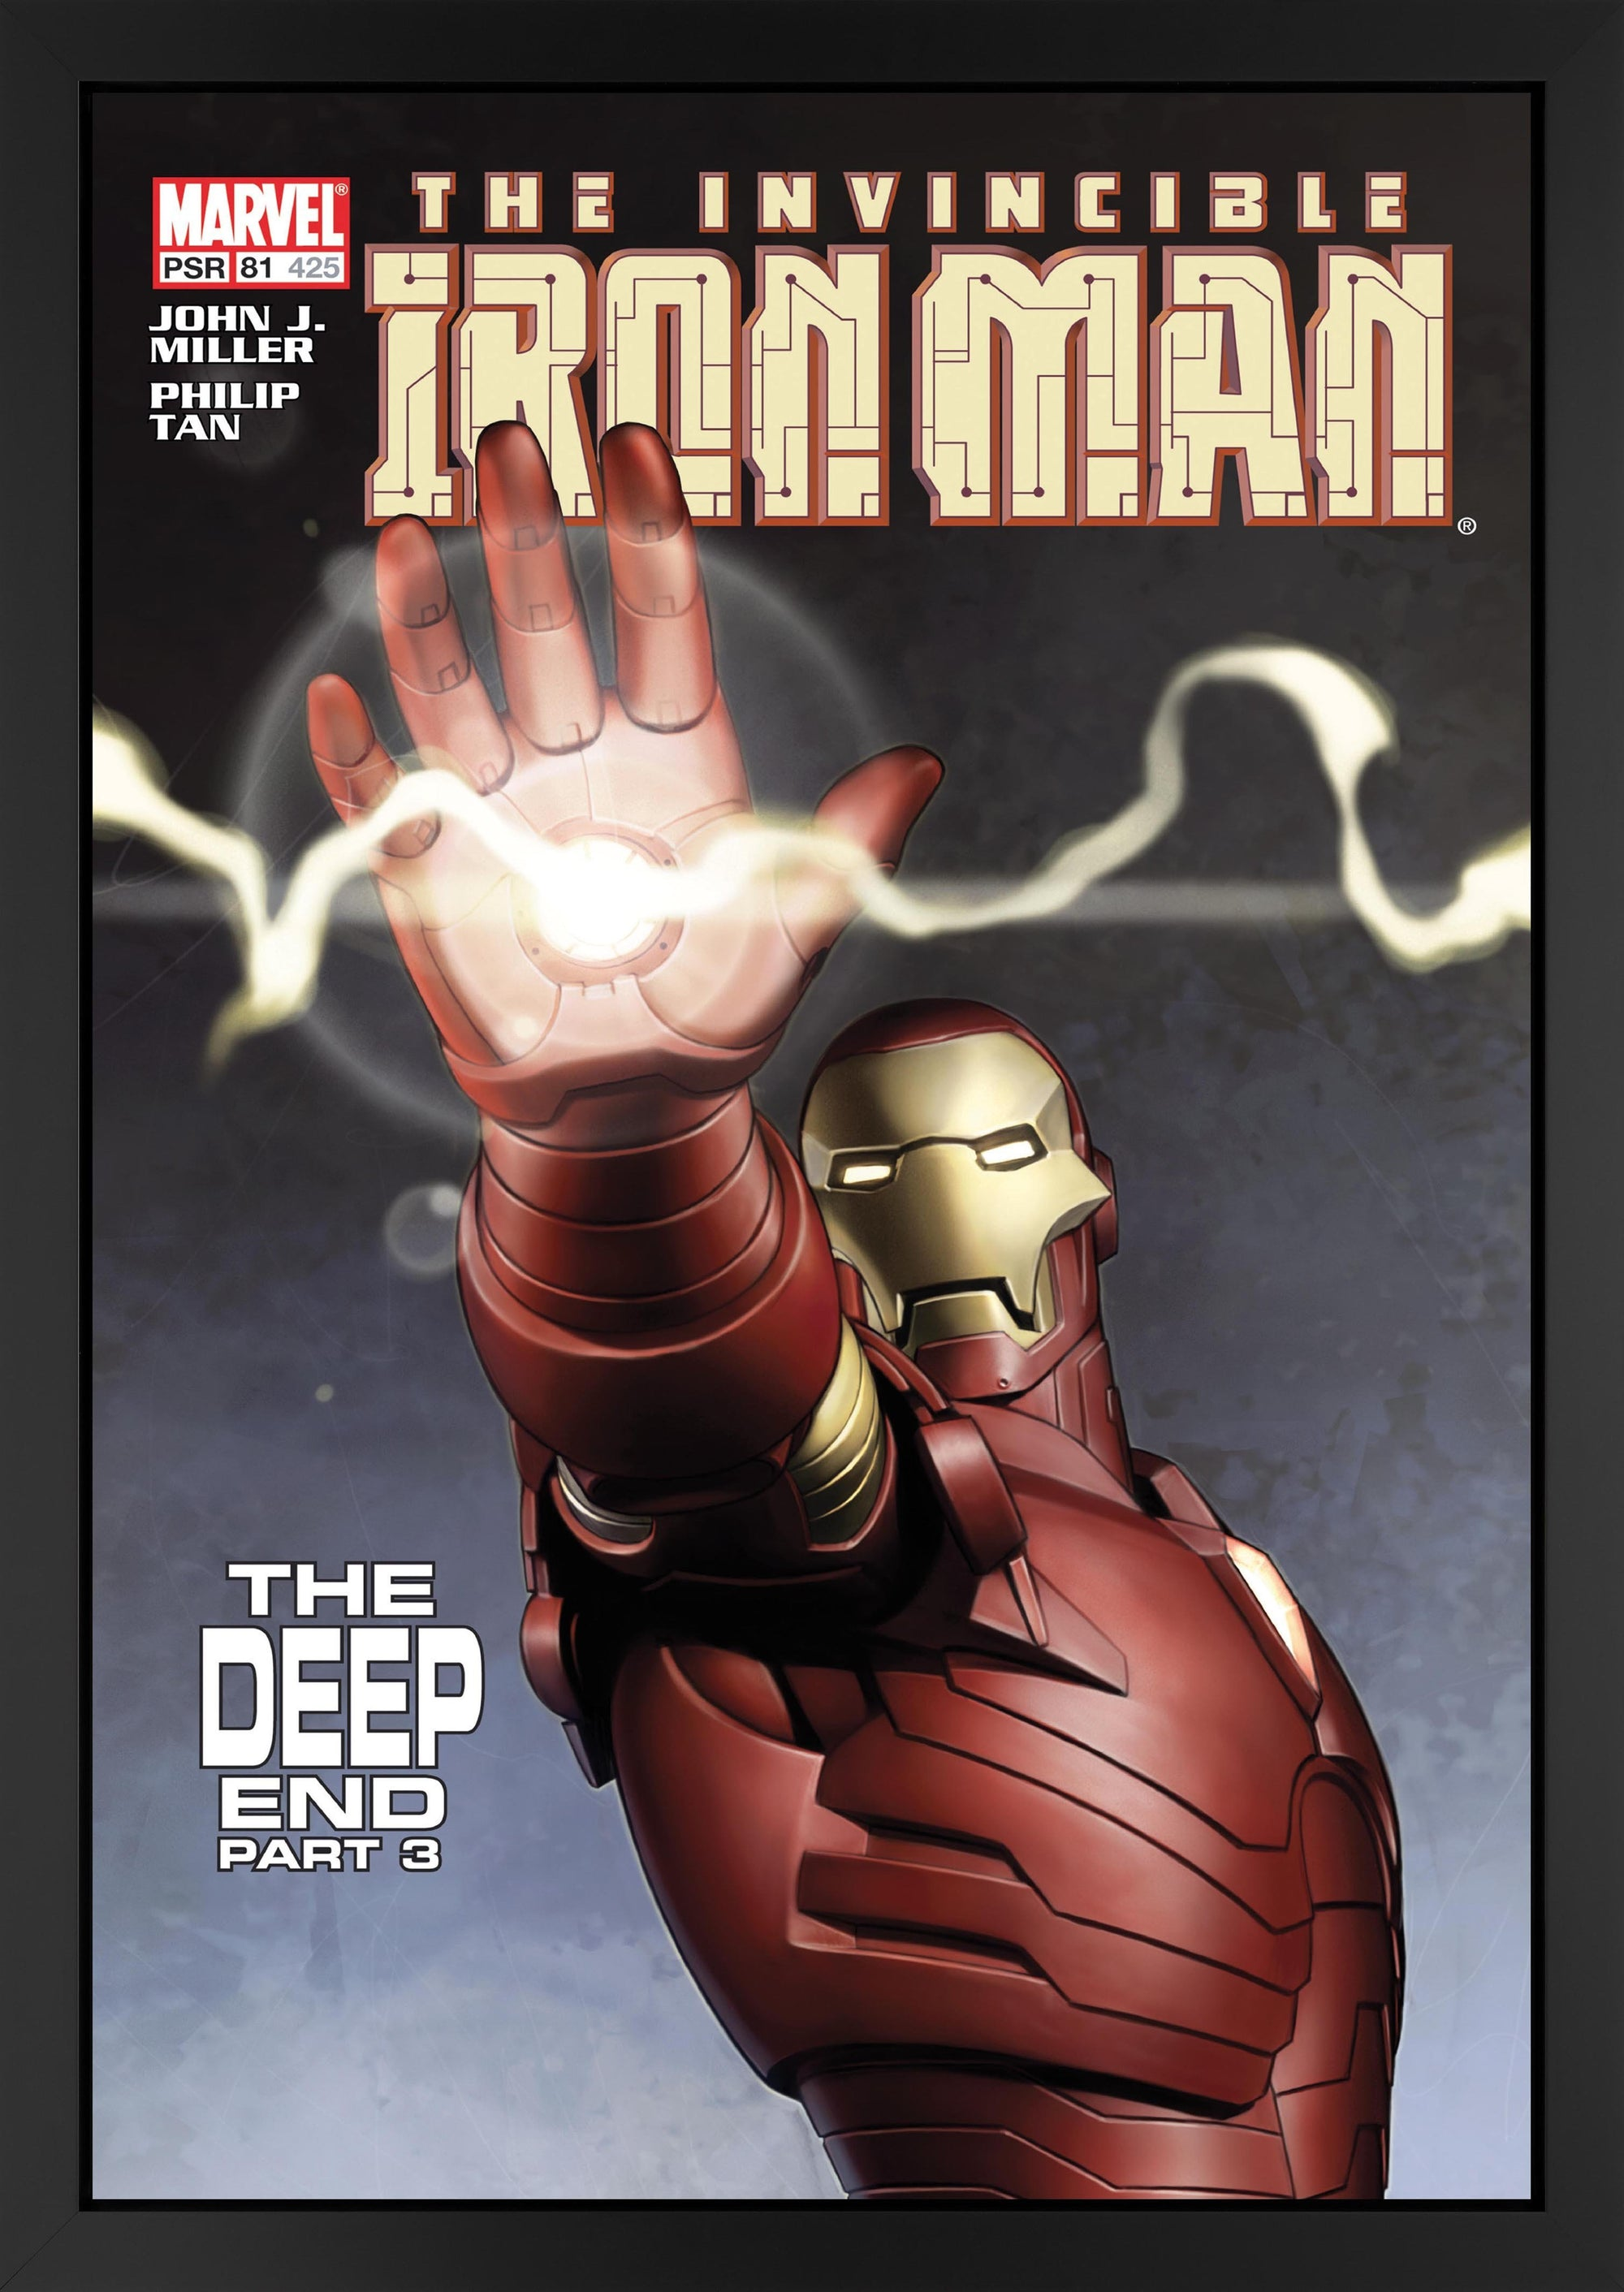 The Invincible Iron Man #81- The Deep End Part 3 - 2017 Stan Lee